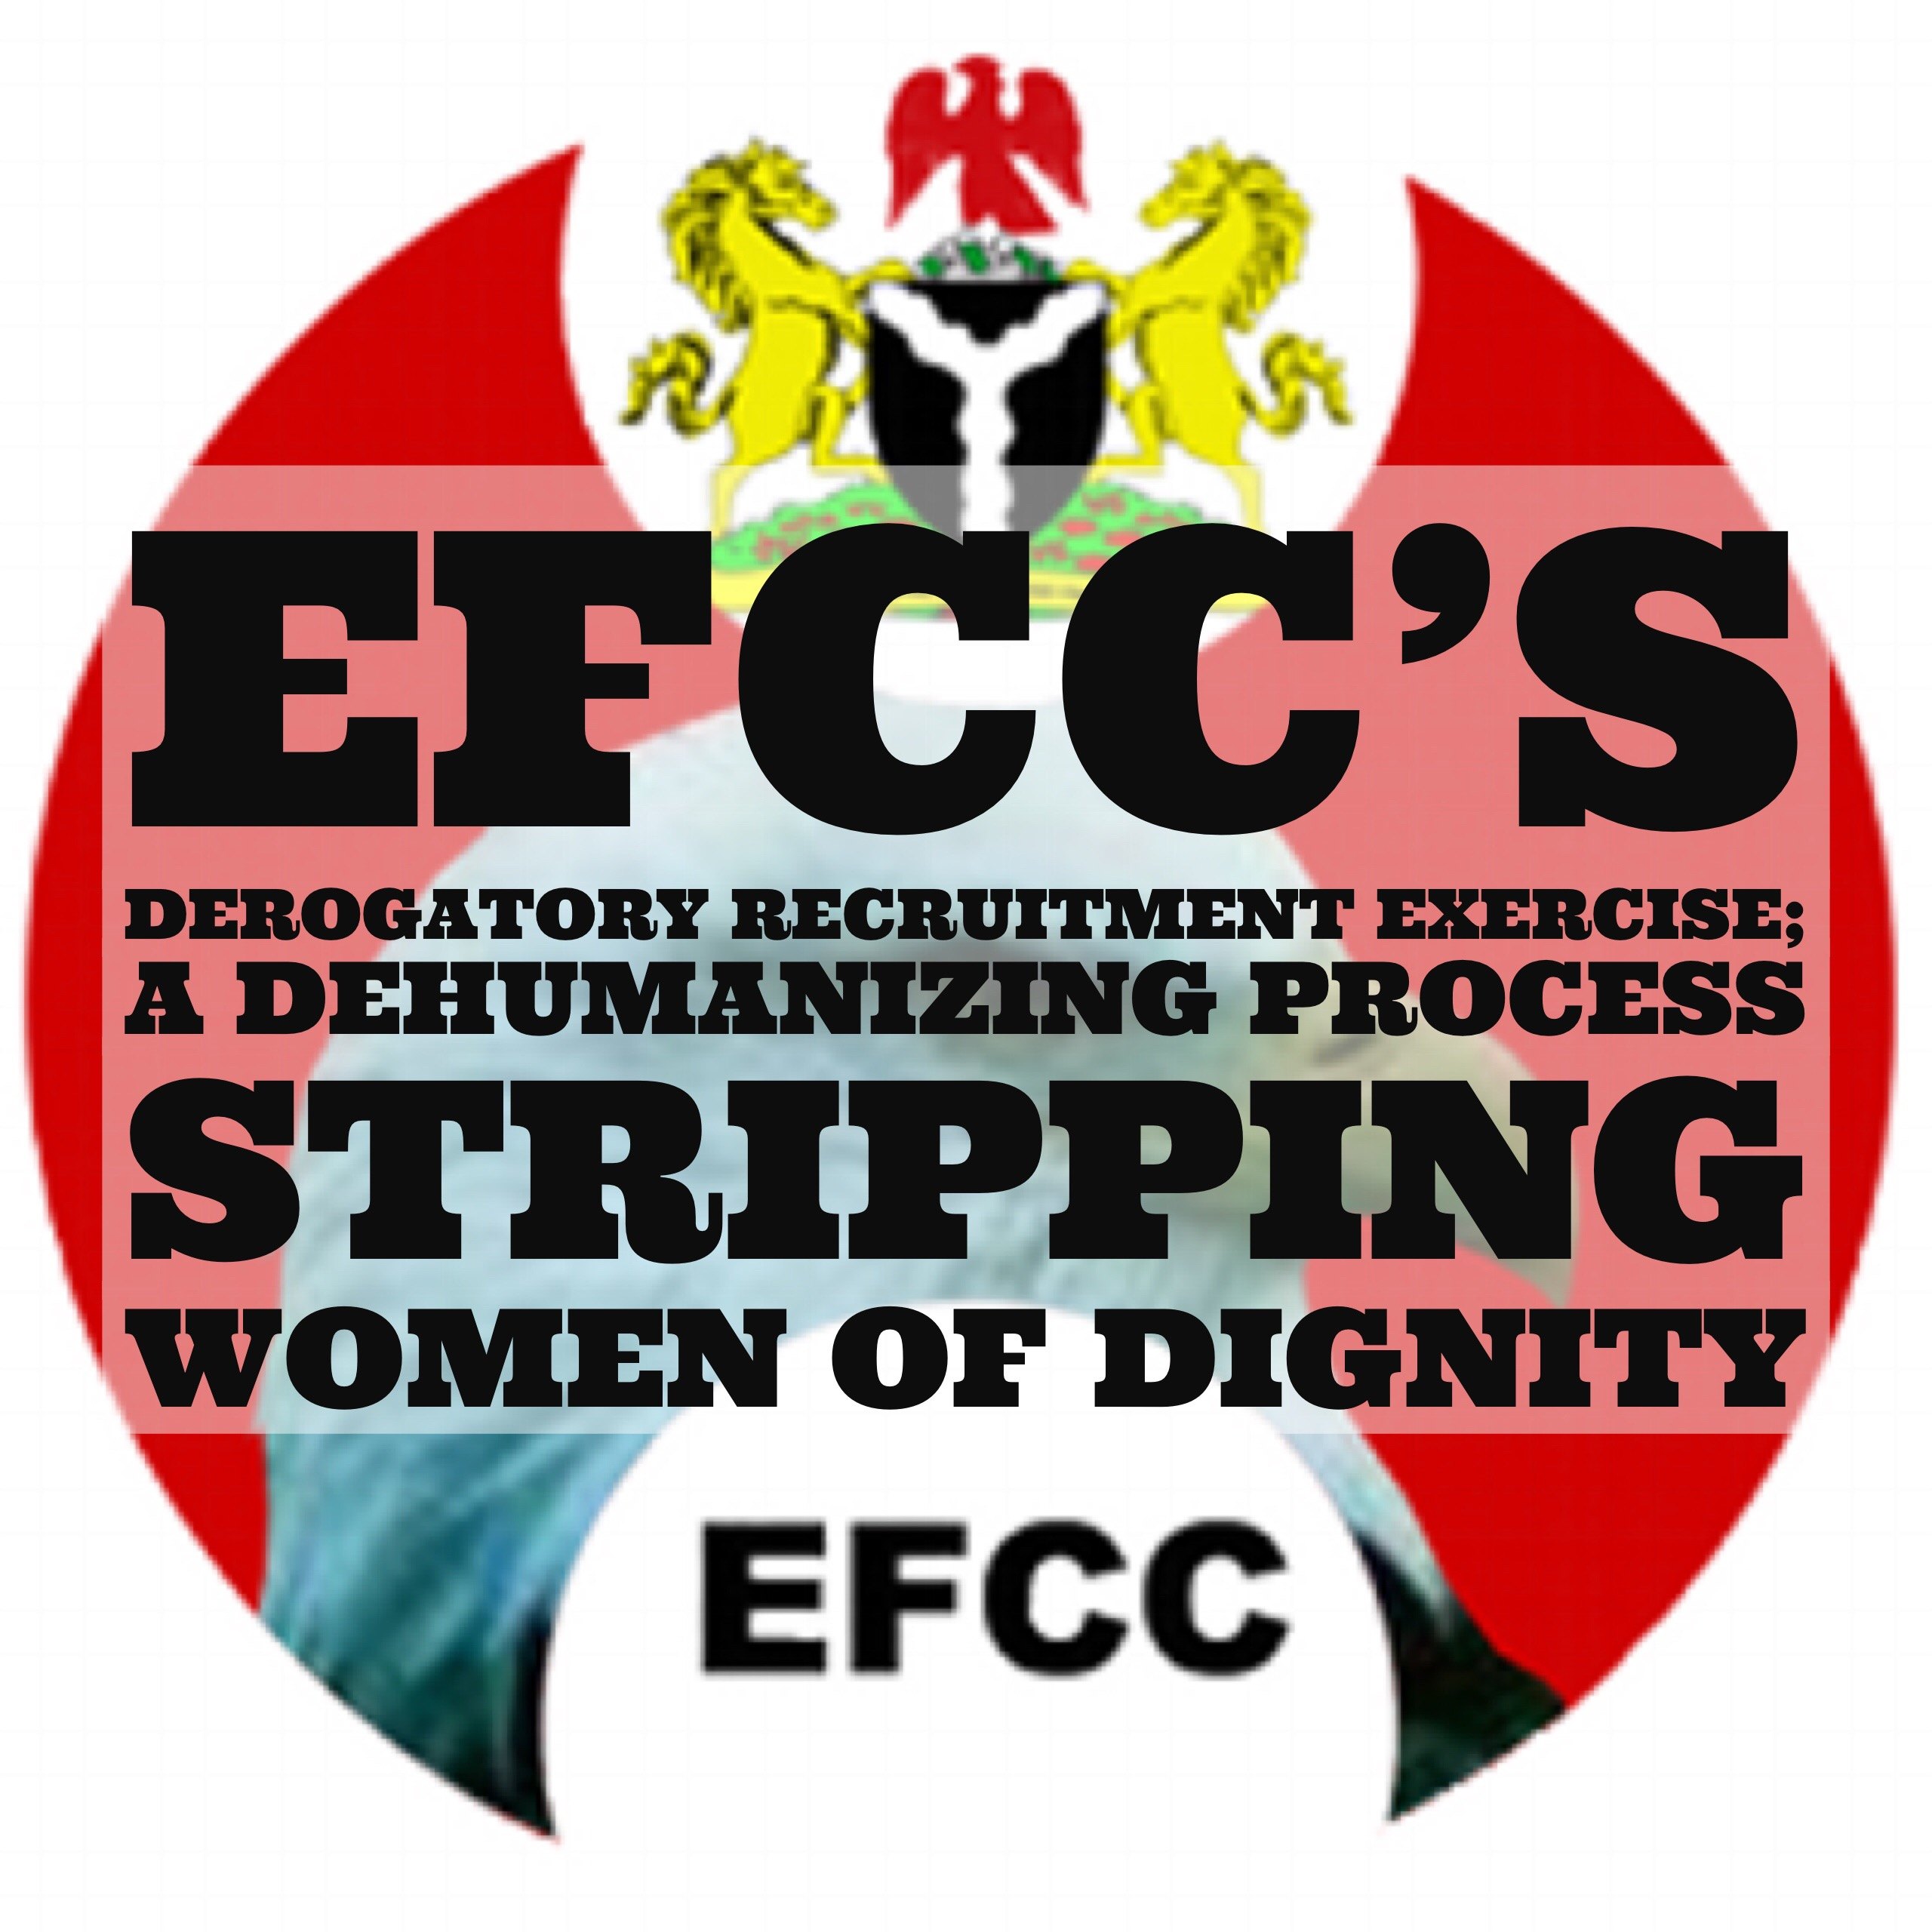 MDB EXCLUSIVE: EFCC's DEROGATORY RECRUITMENT EXERCISE; A DEHUMANIZING PROCESS STRIPING WOMEN OF DIGNITY